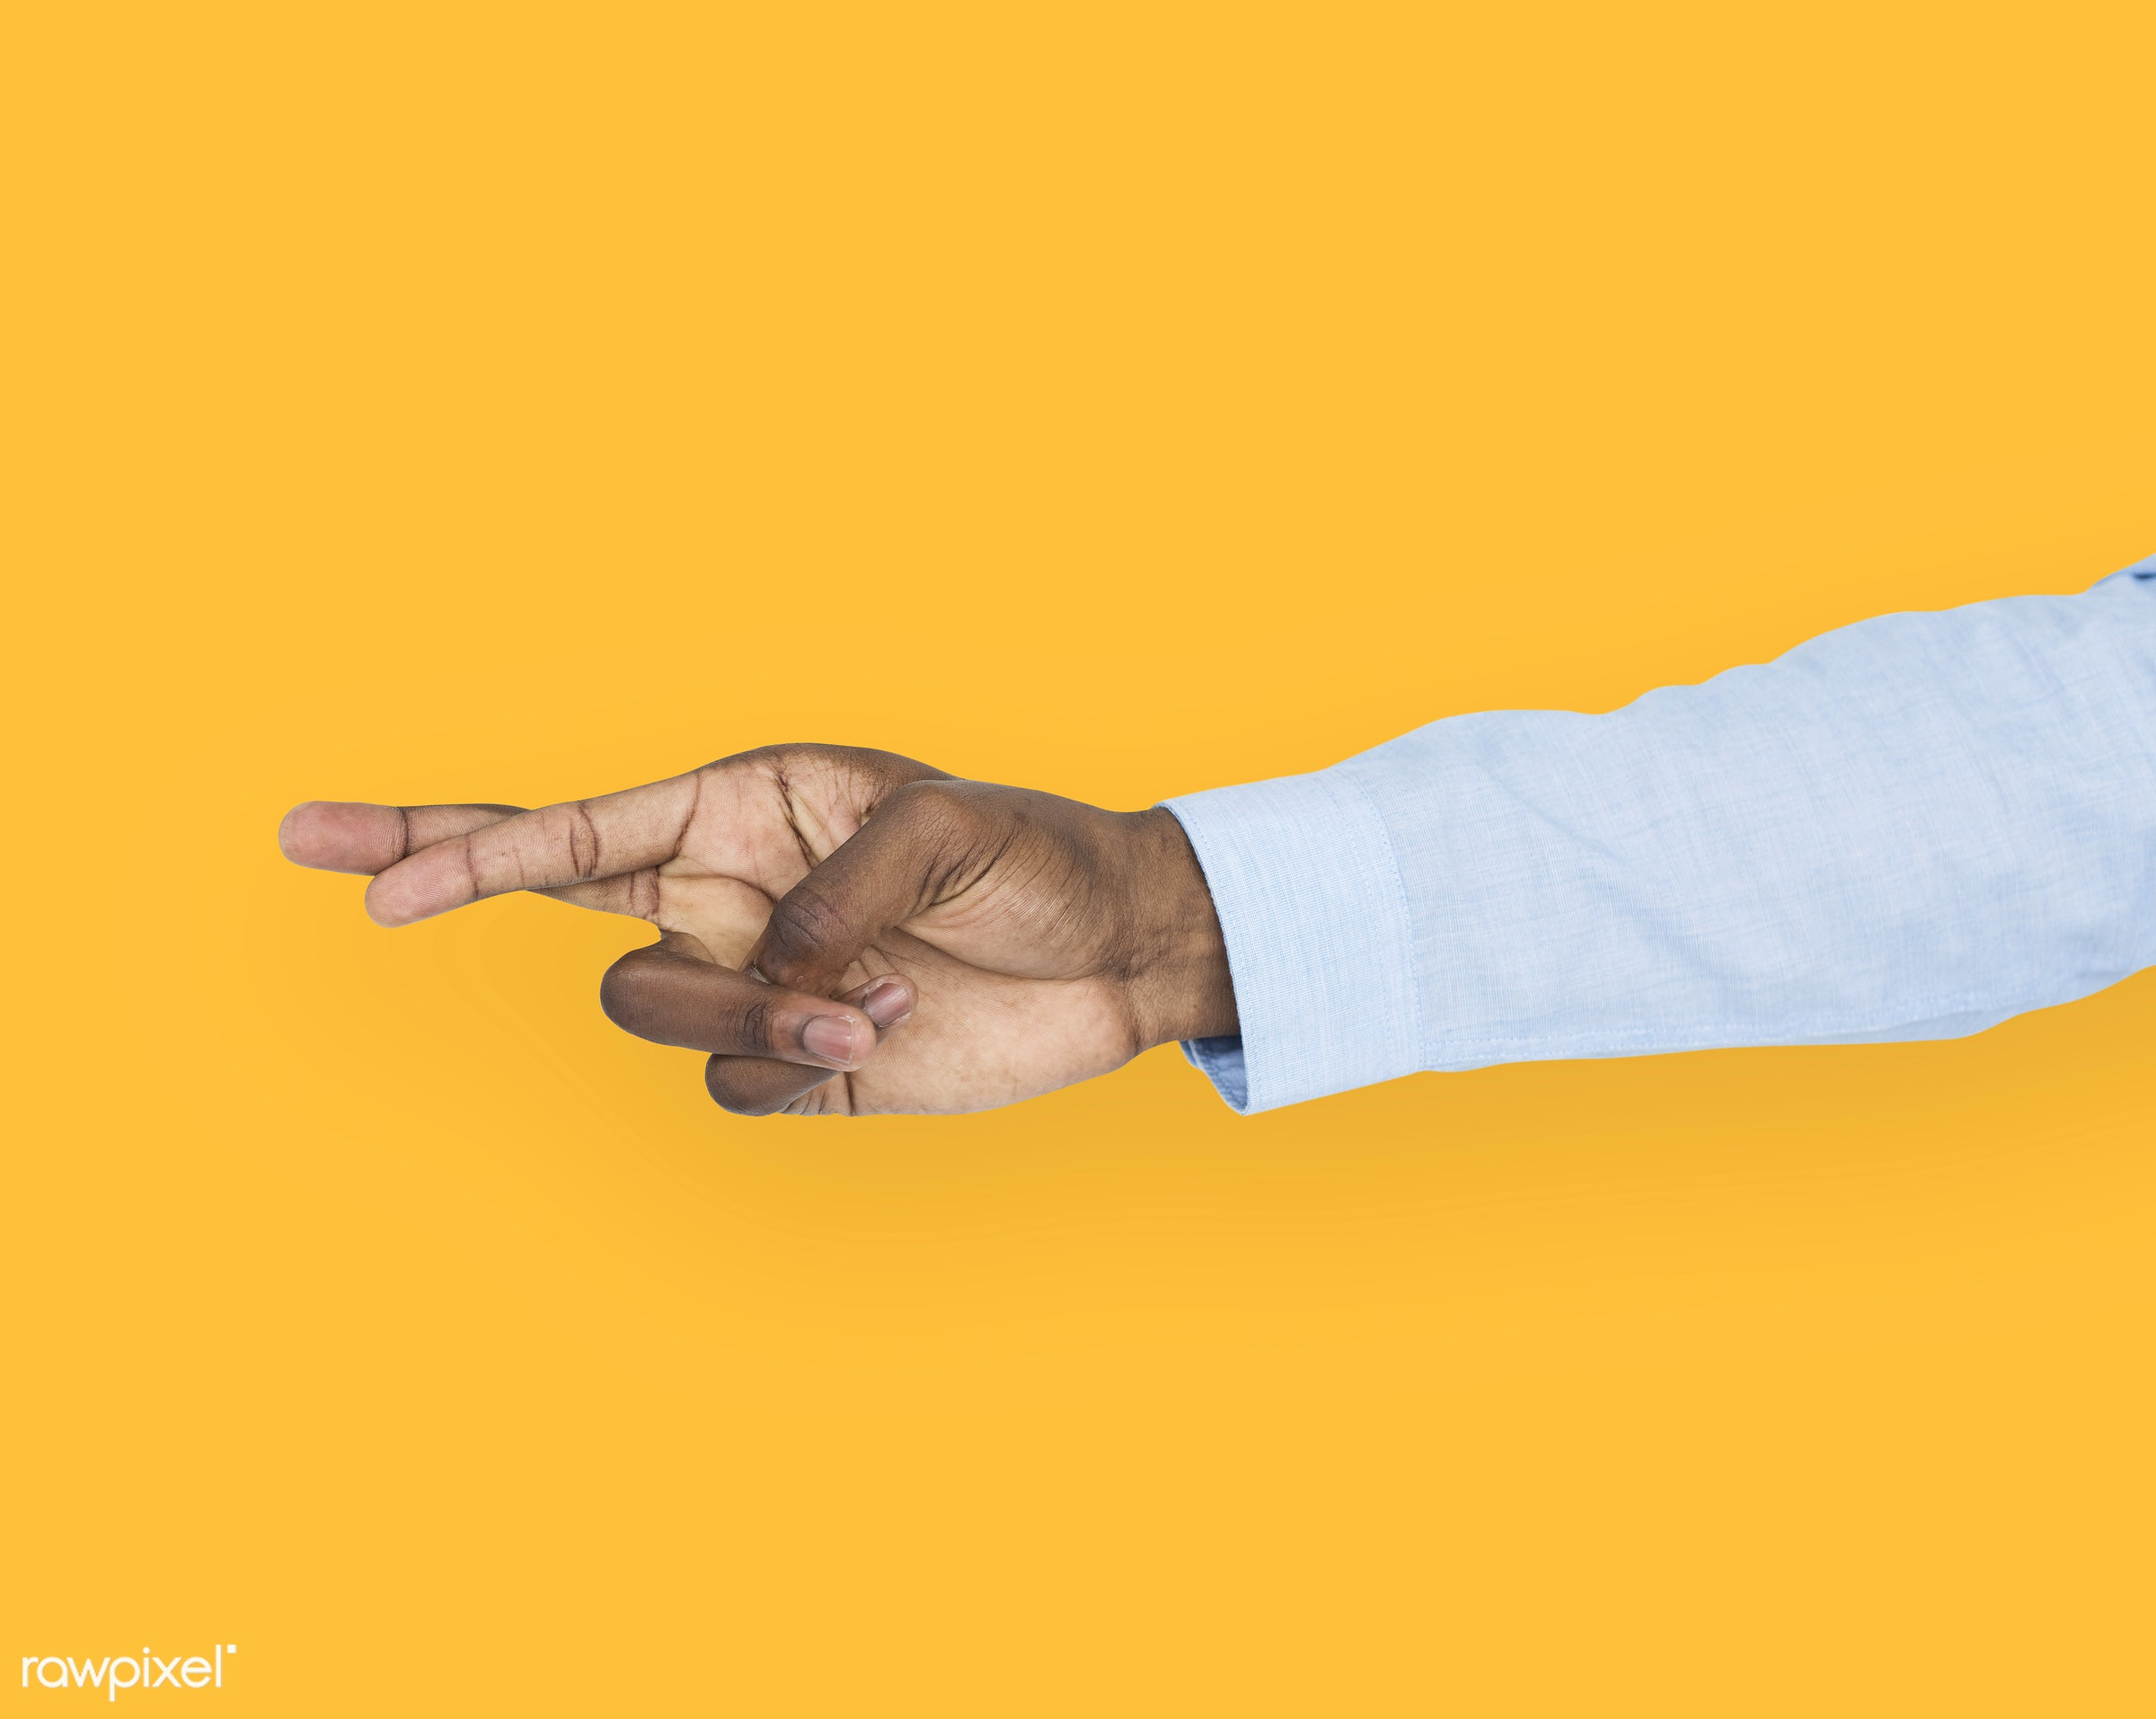 person, cut-out, yellow, race, hand, untruth, dishonesty, showing, isolated, african descent, luck, gesture, finger, fingers...